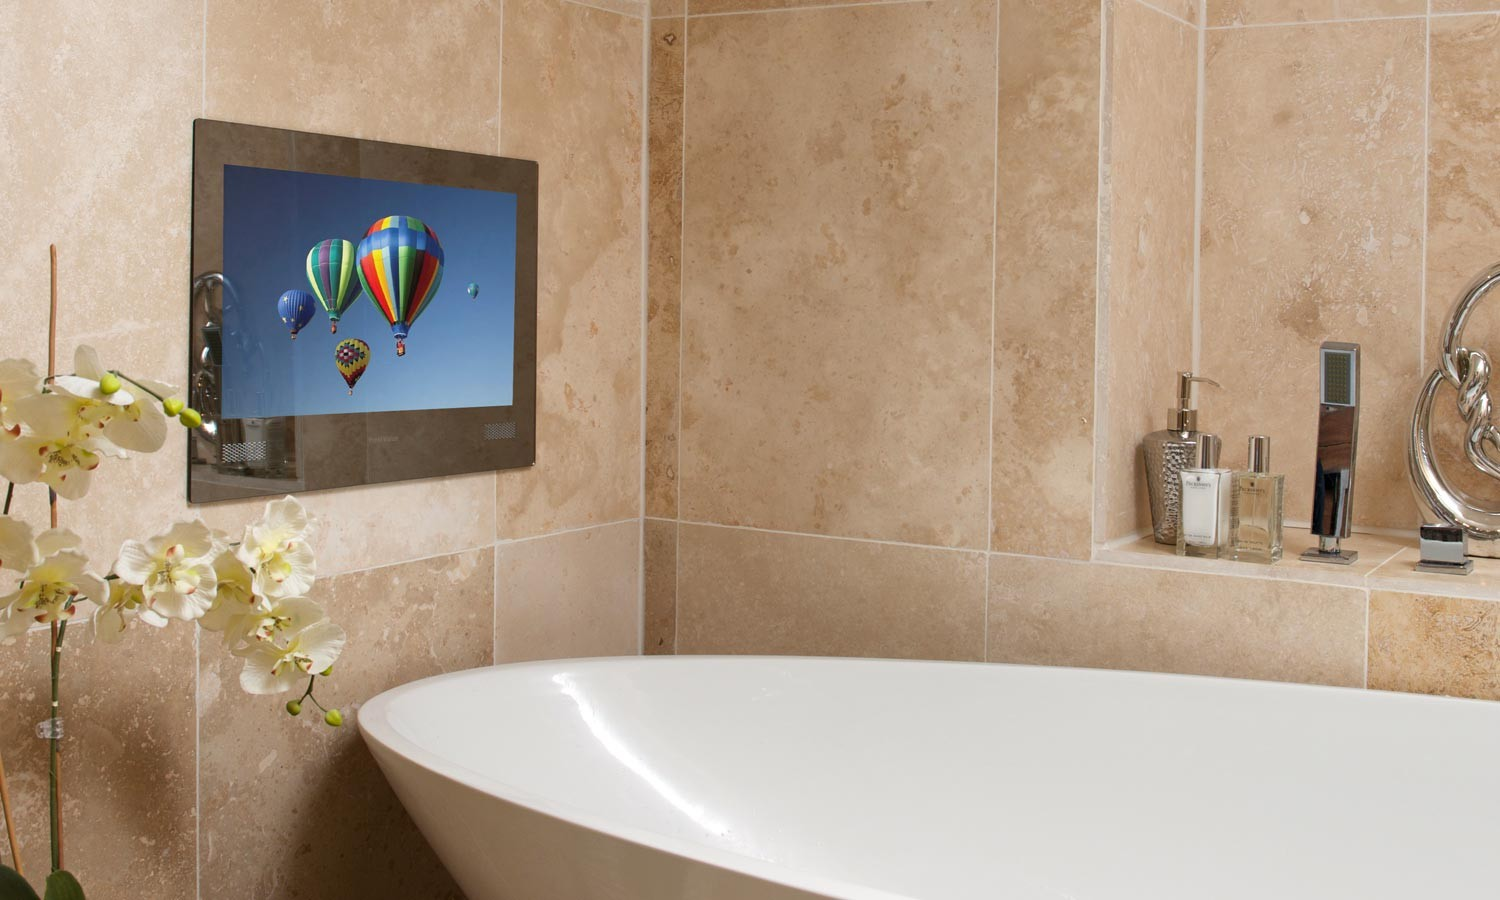 The Bathroom Is A Tv In The Bathroom A Necessity Or A Luxury The